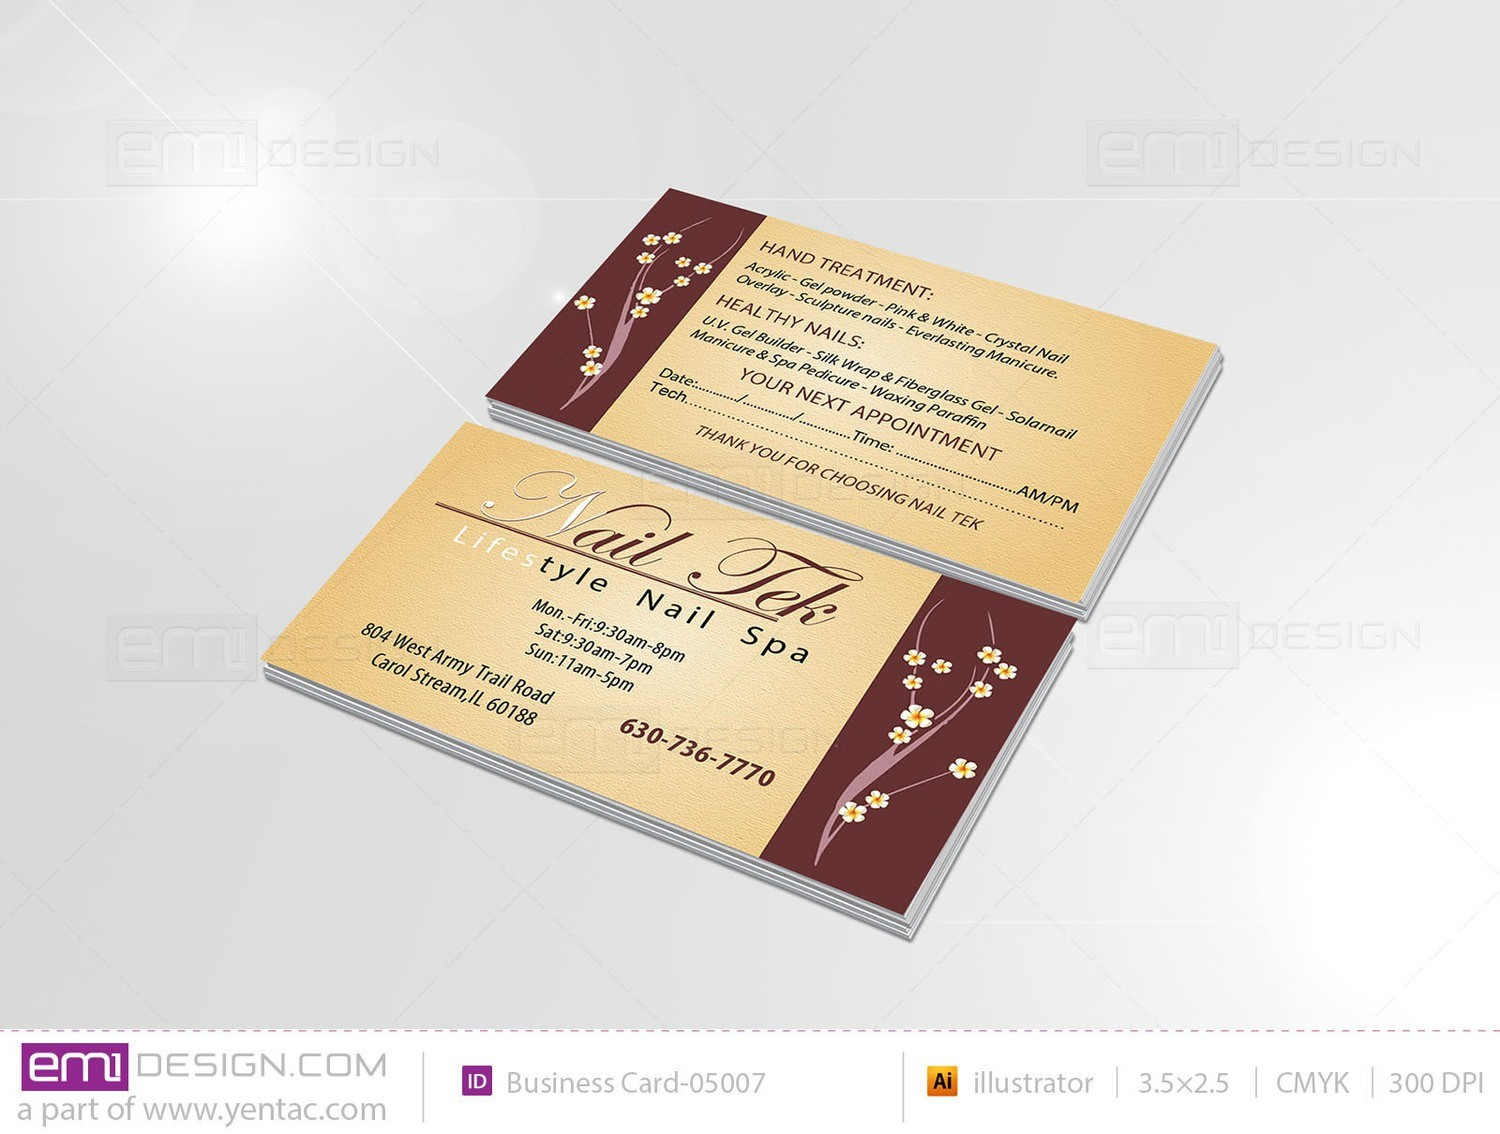 Business Card - Template BusCard-05007 - NailTek